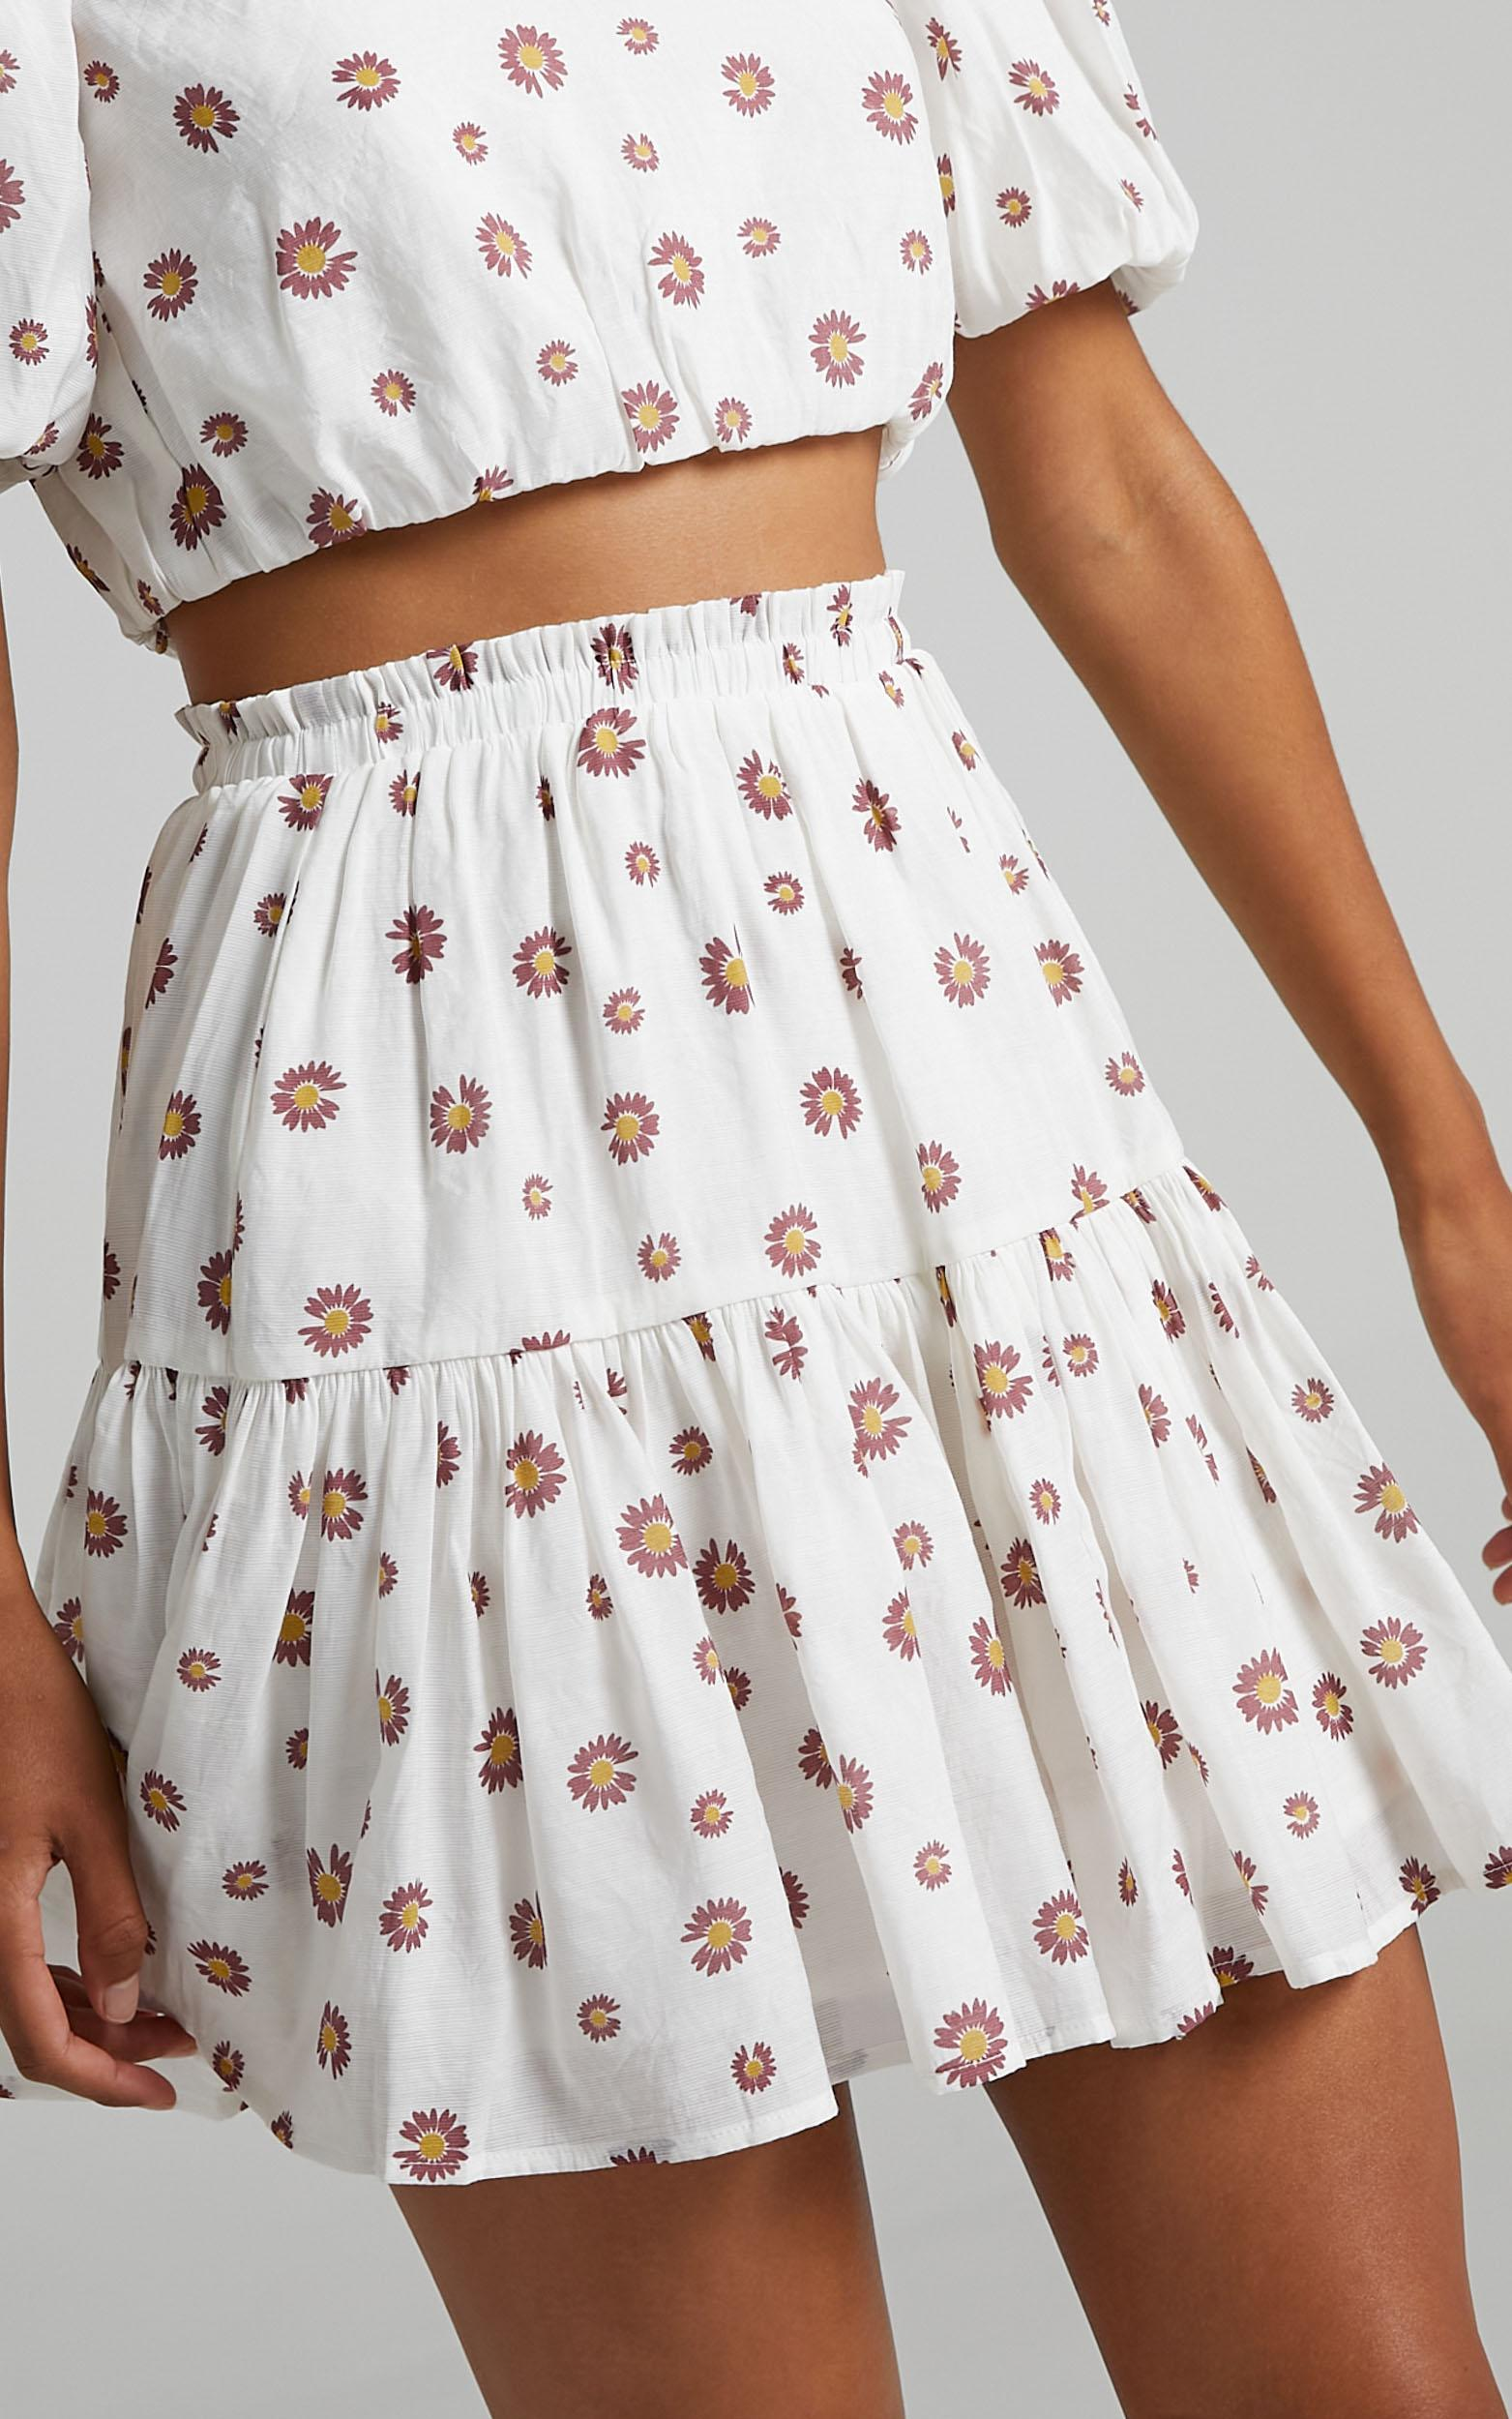 Carmentis Skirt in Blush Floral - 6 (XS), White, hi-res image number null